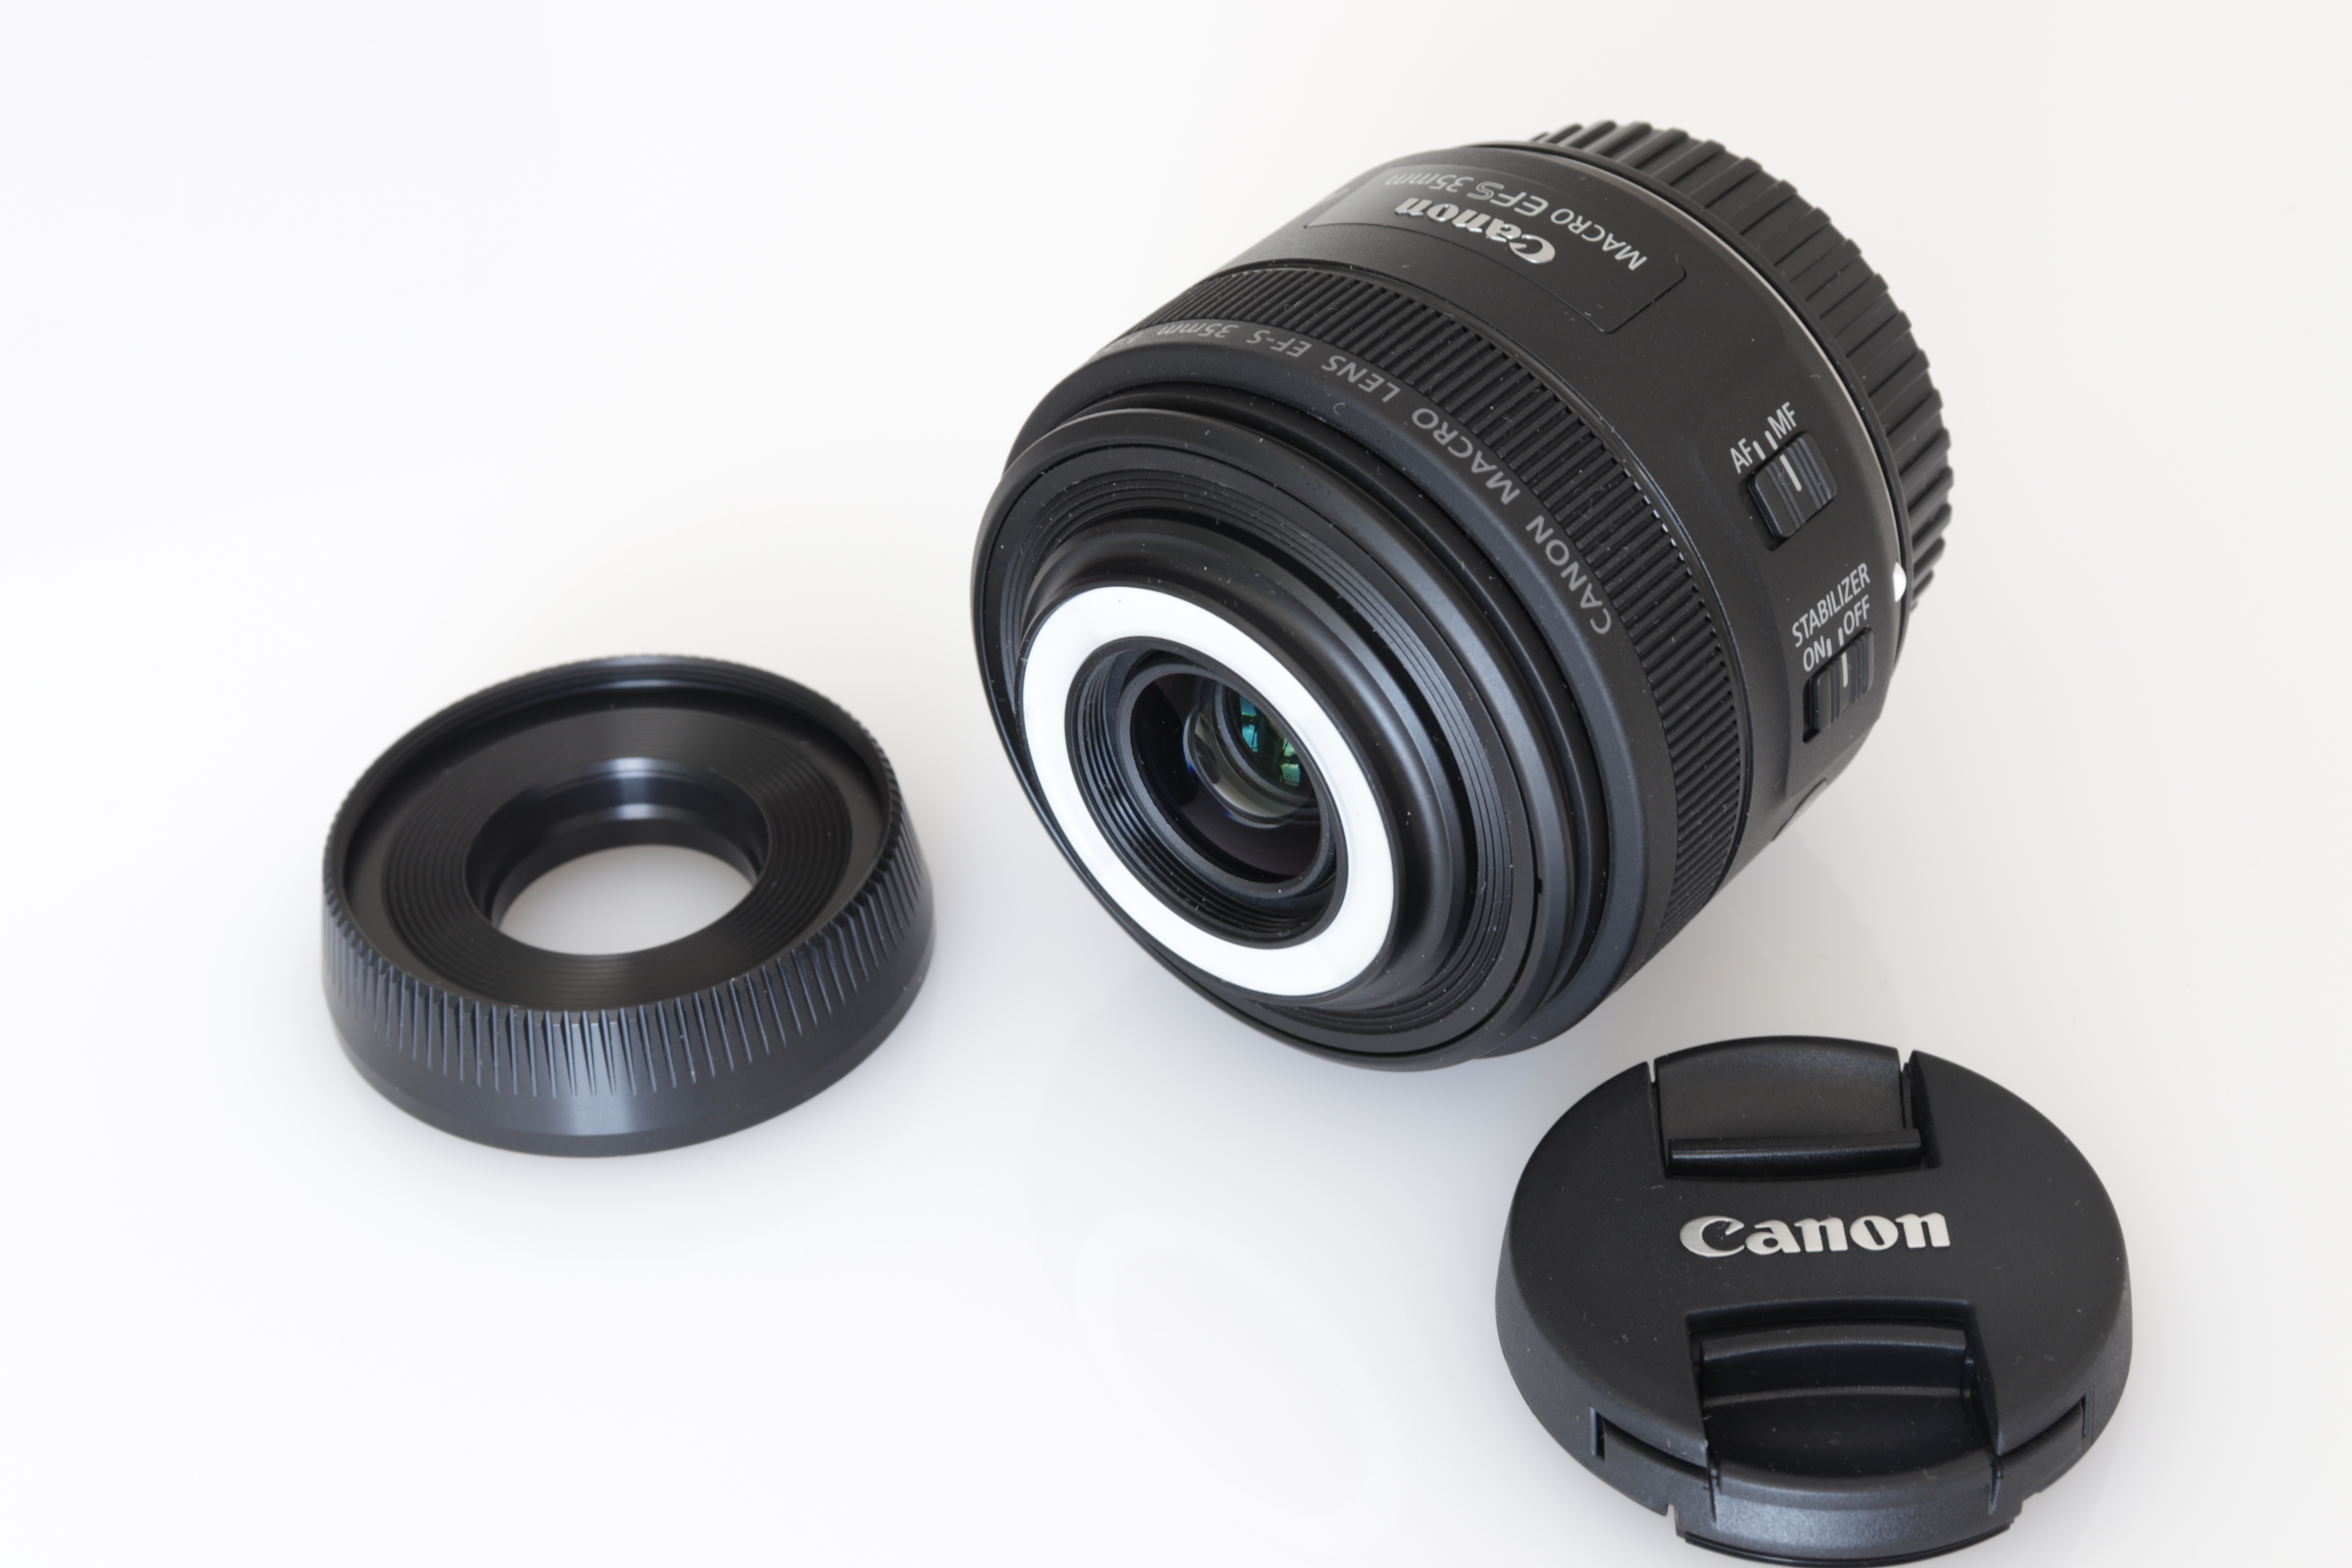 Canon EFS 35 mm